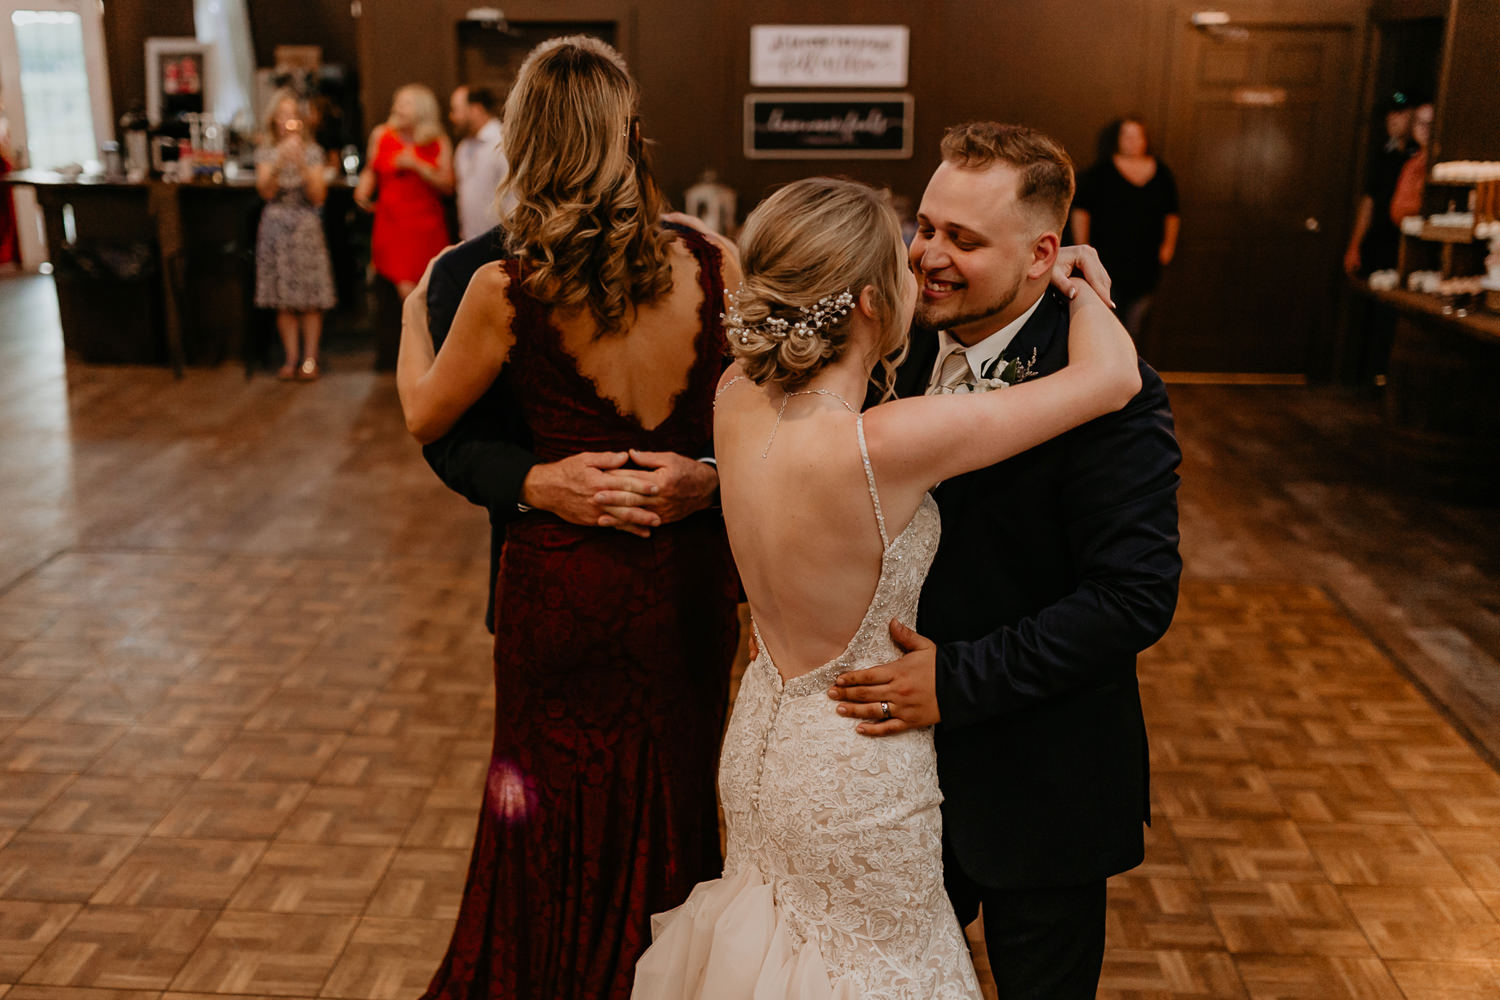 newlyweds dancing arms around each other, parents also dancing